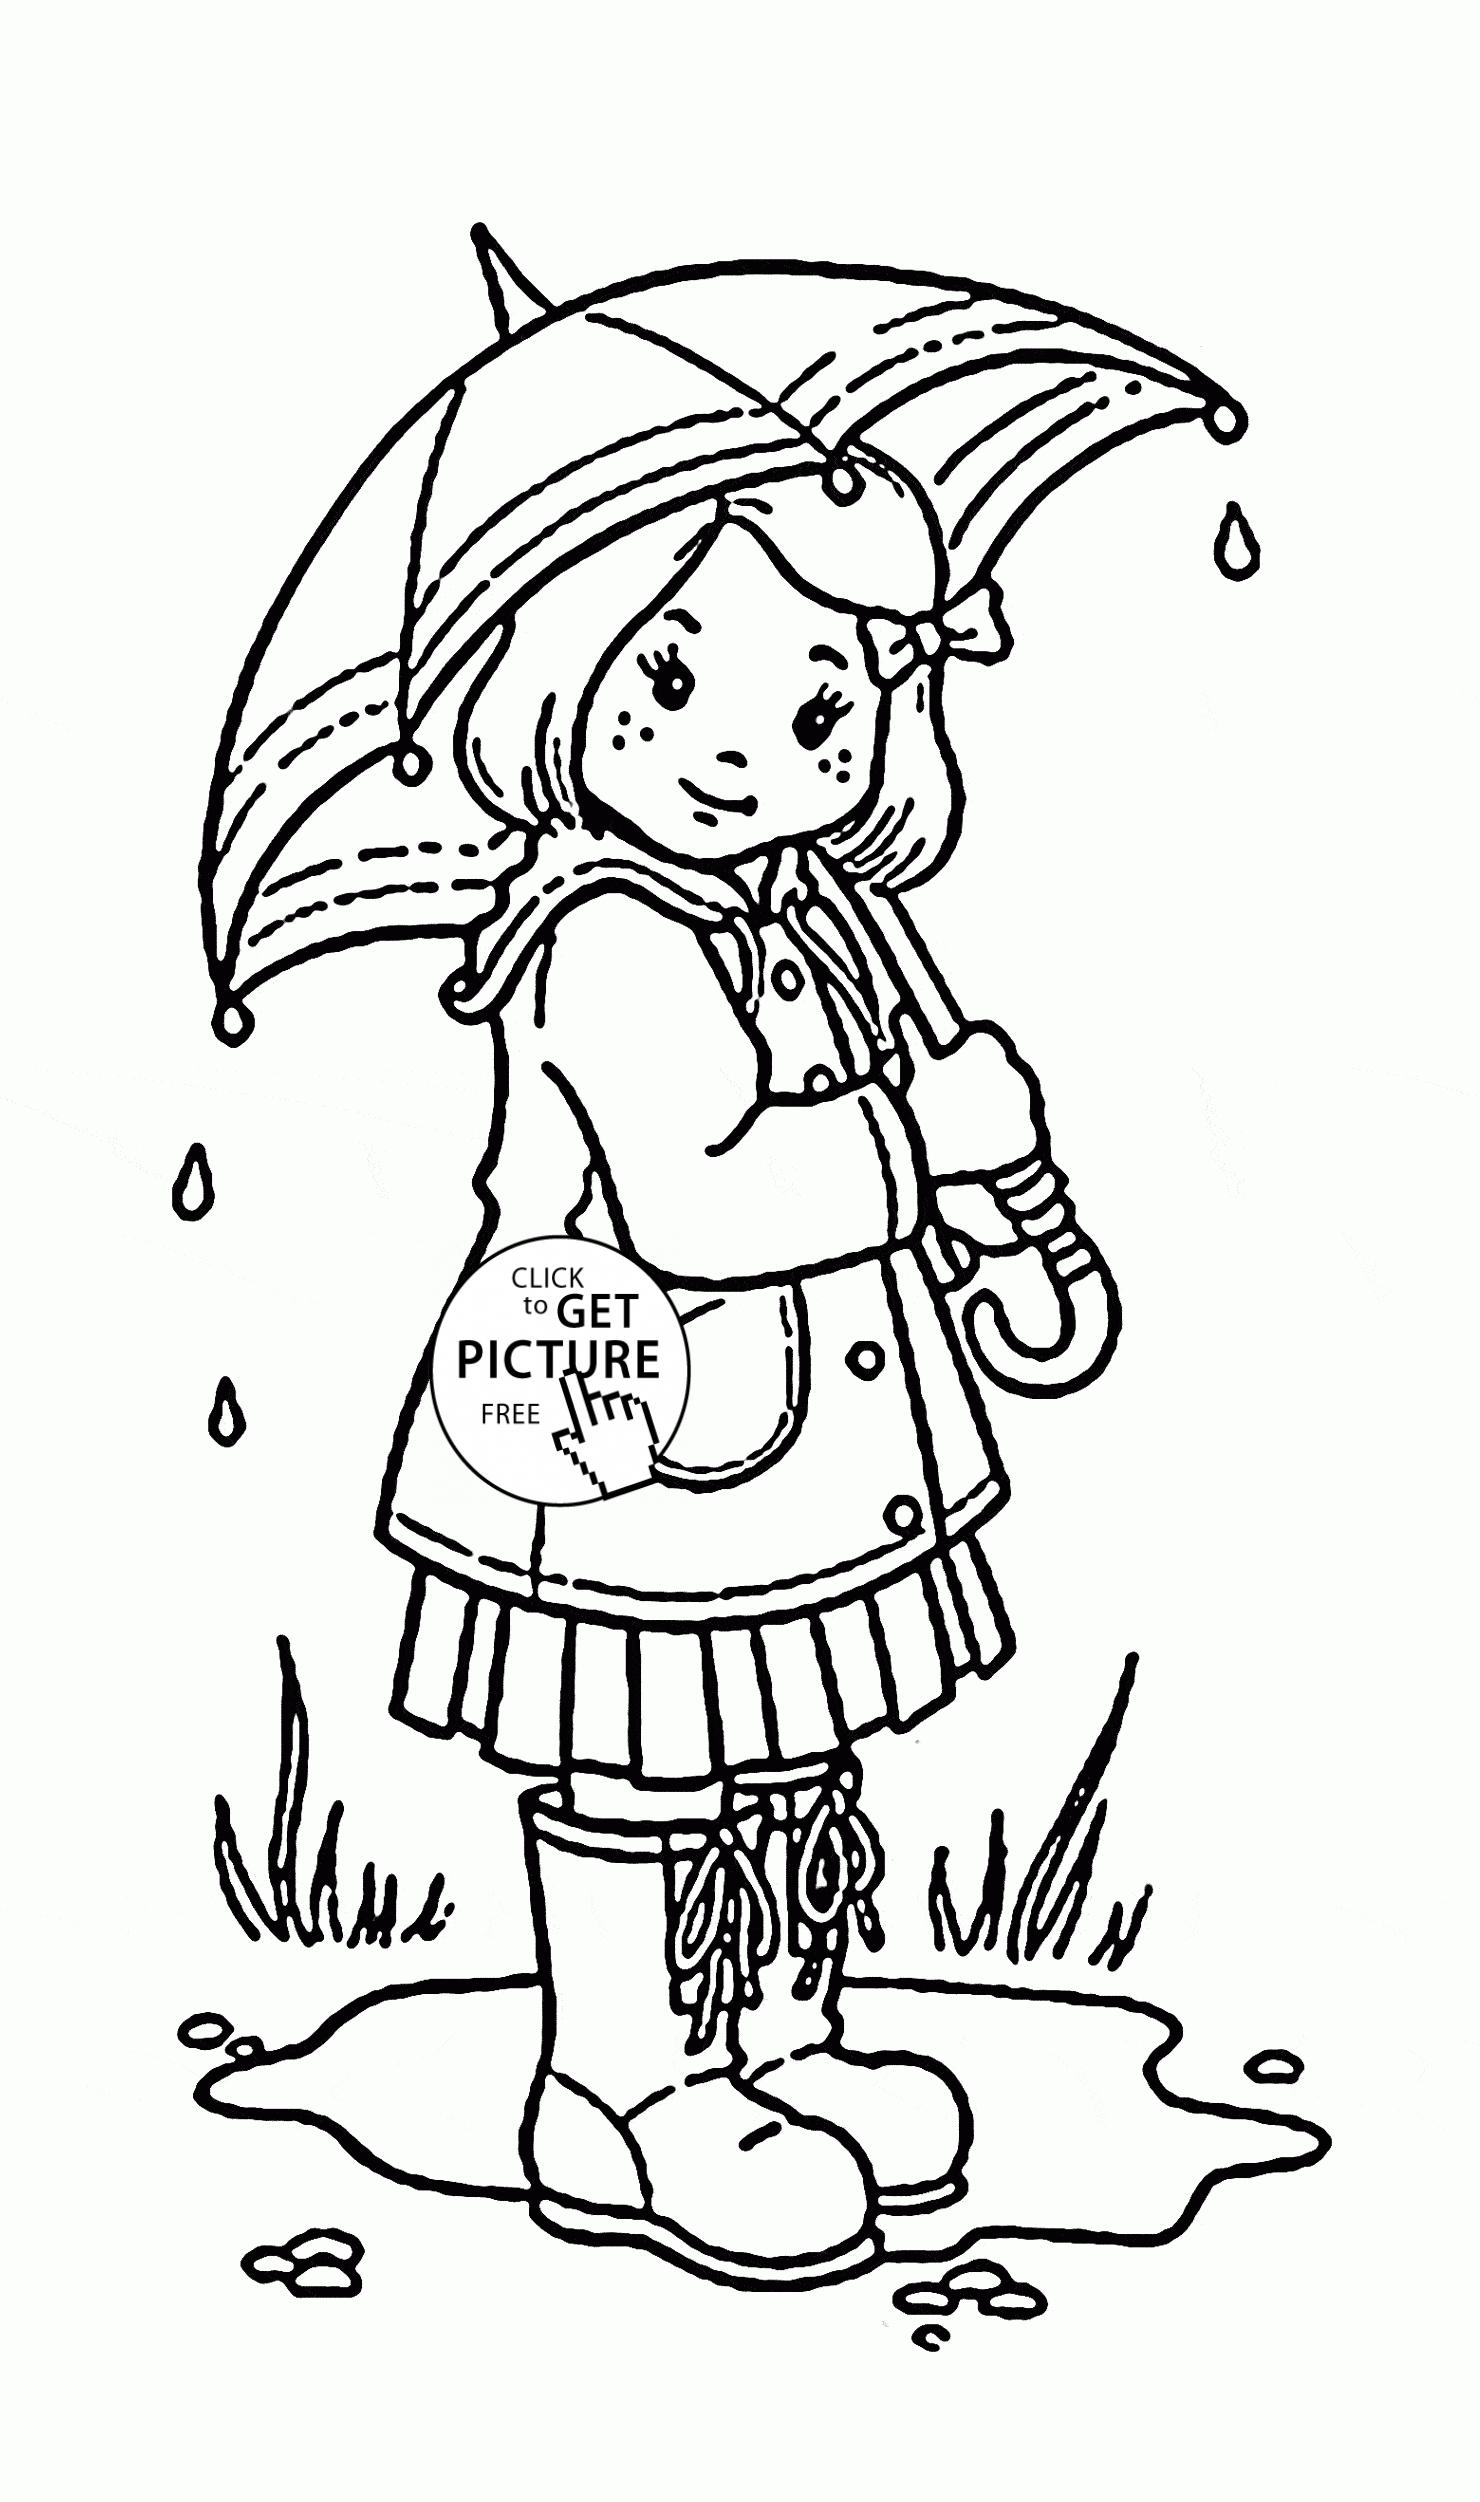 coloring pages for kid - girl and umbrella coloring page for kids spring coloring pages printables free